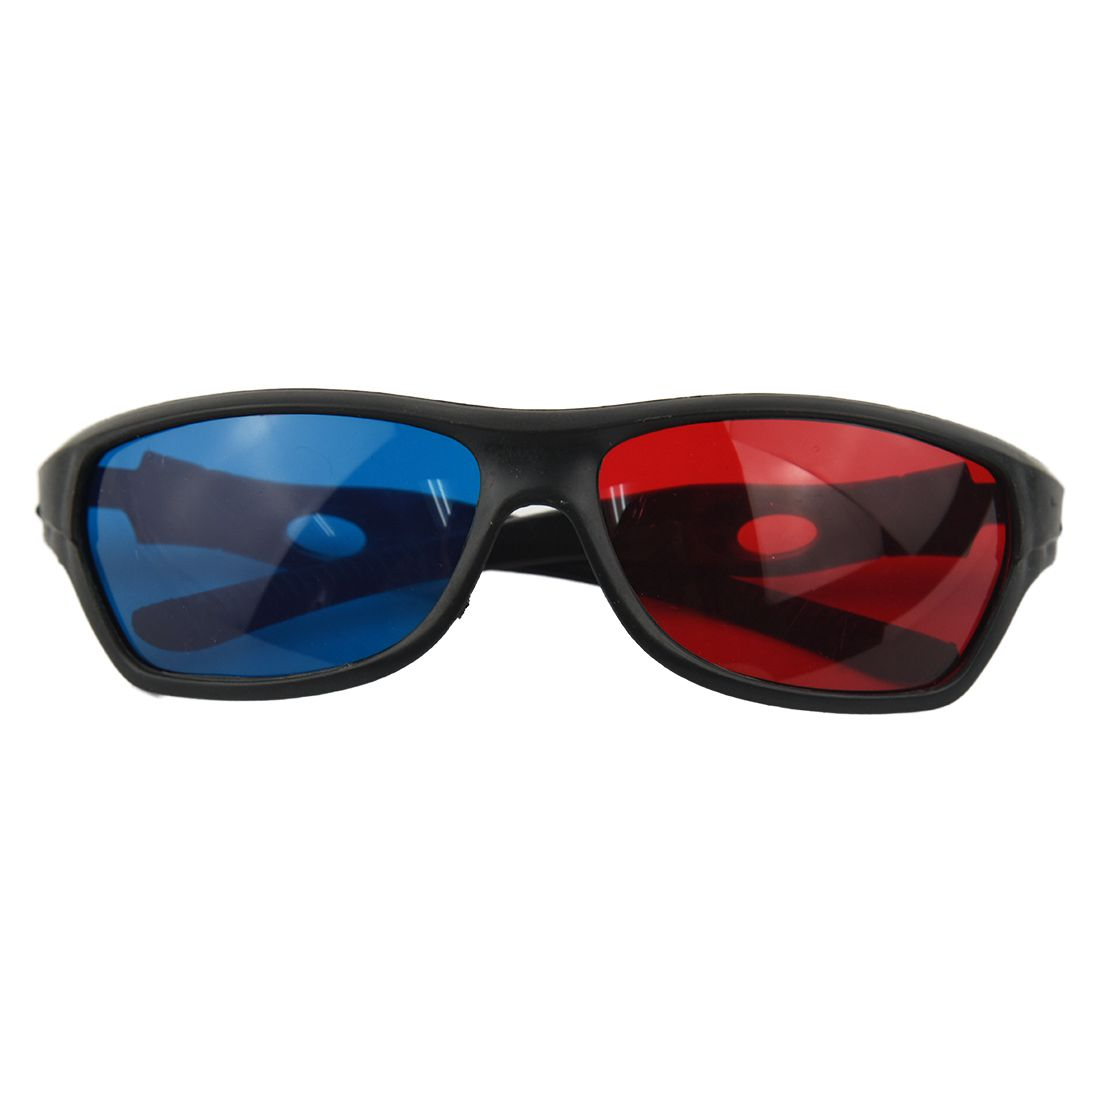 HOT-Fasdga 3D Plastic glasses/VR glasses Red-blue Anaglyph Simple style 3D Glasses 3D mo ...